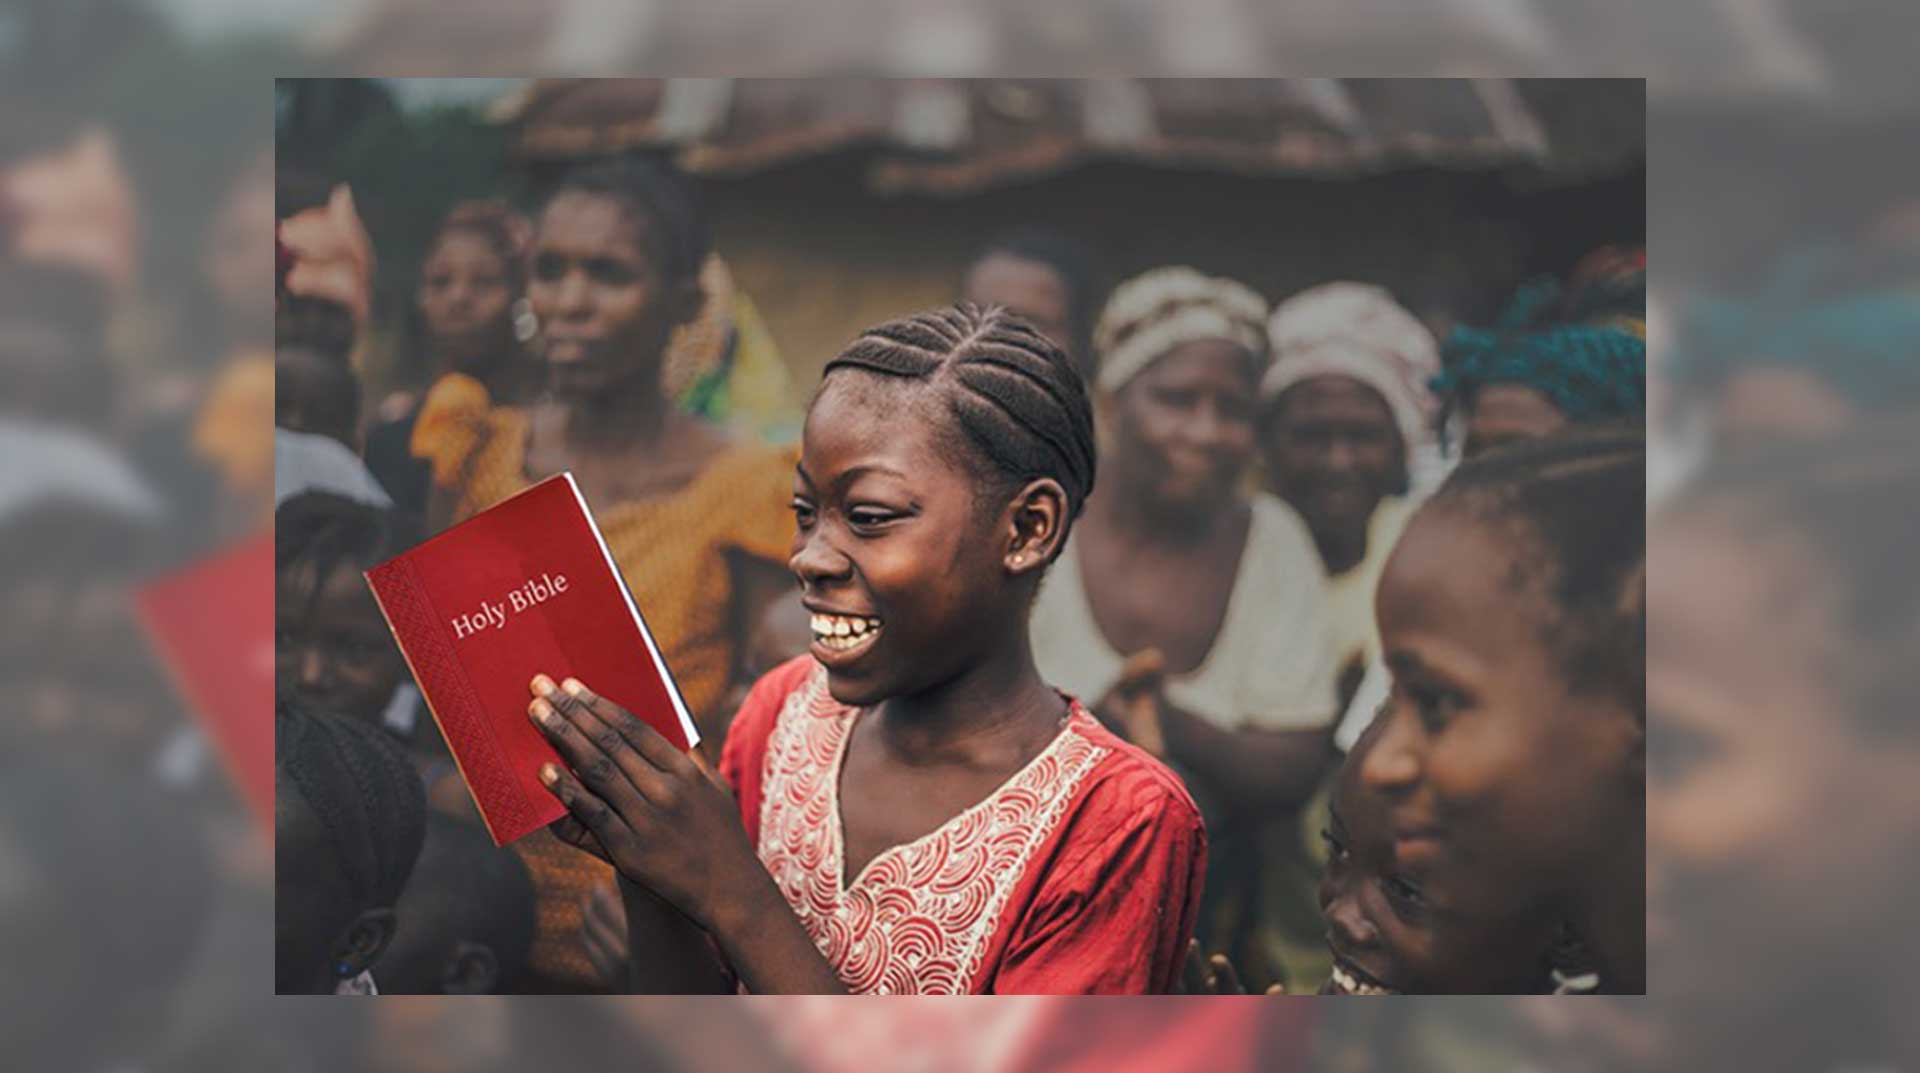 Smiling girl with Bible